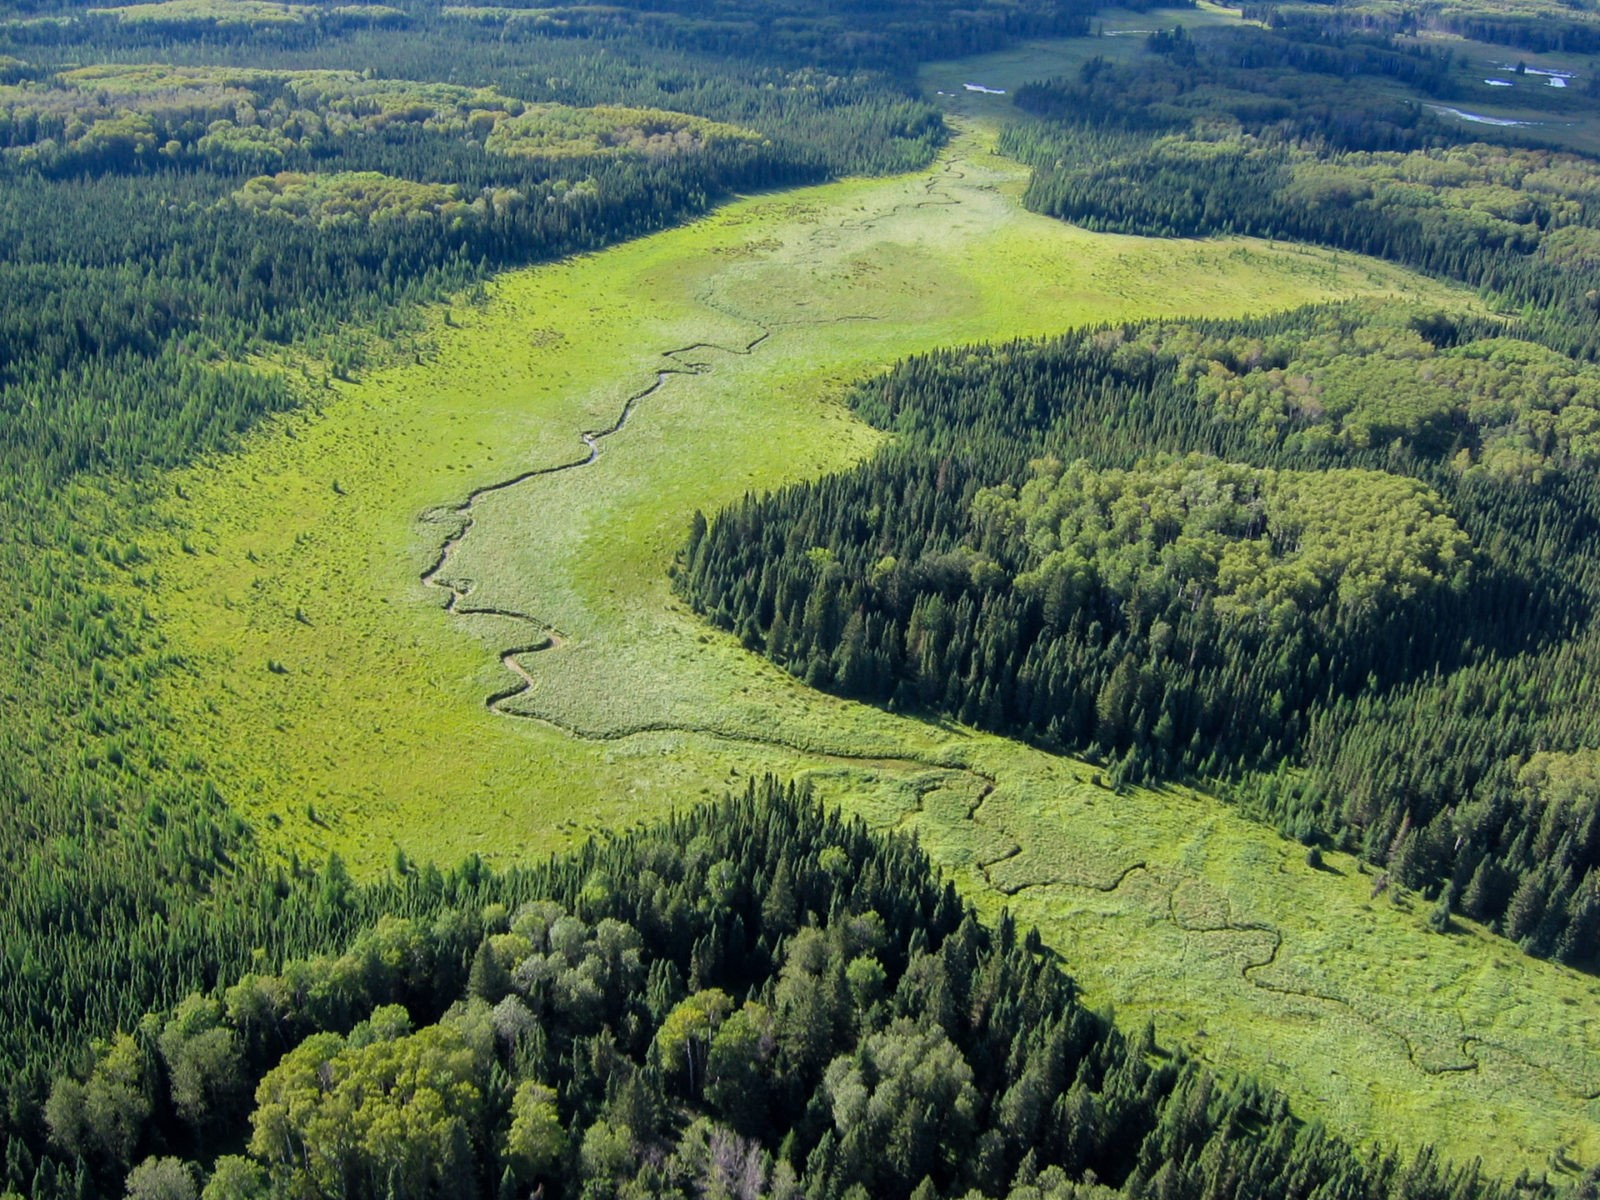 Aerial view of a creek running through a forest landscape